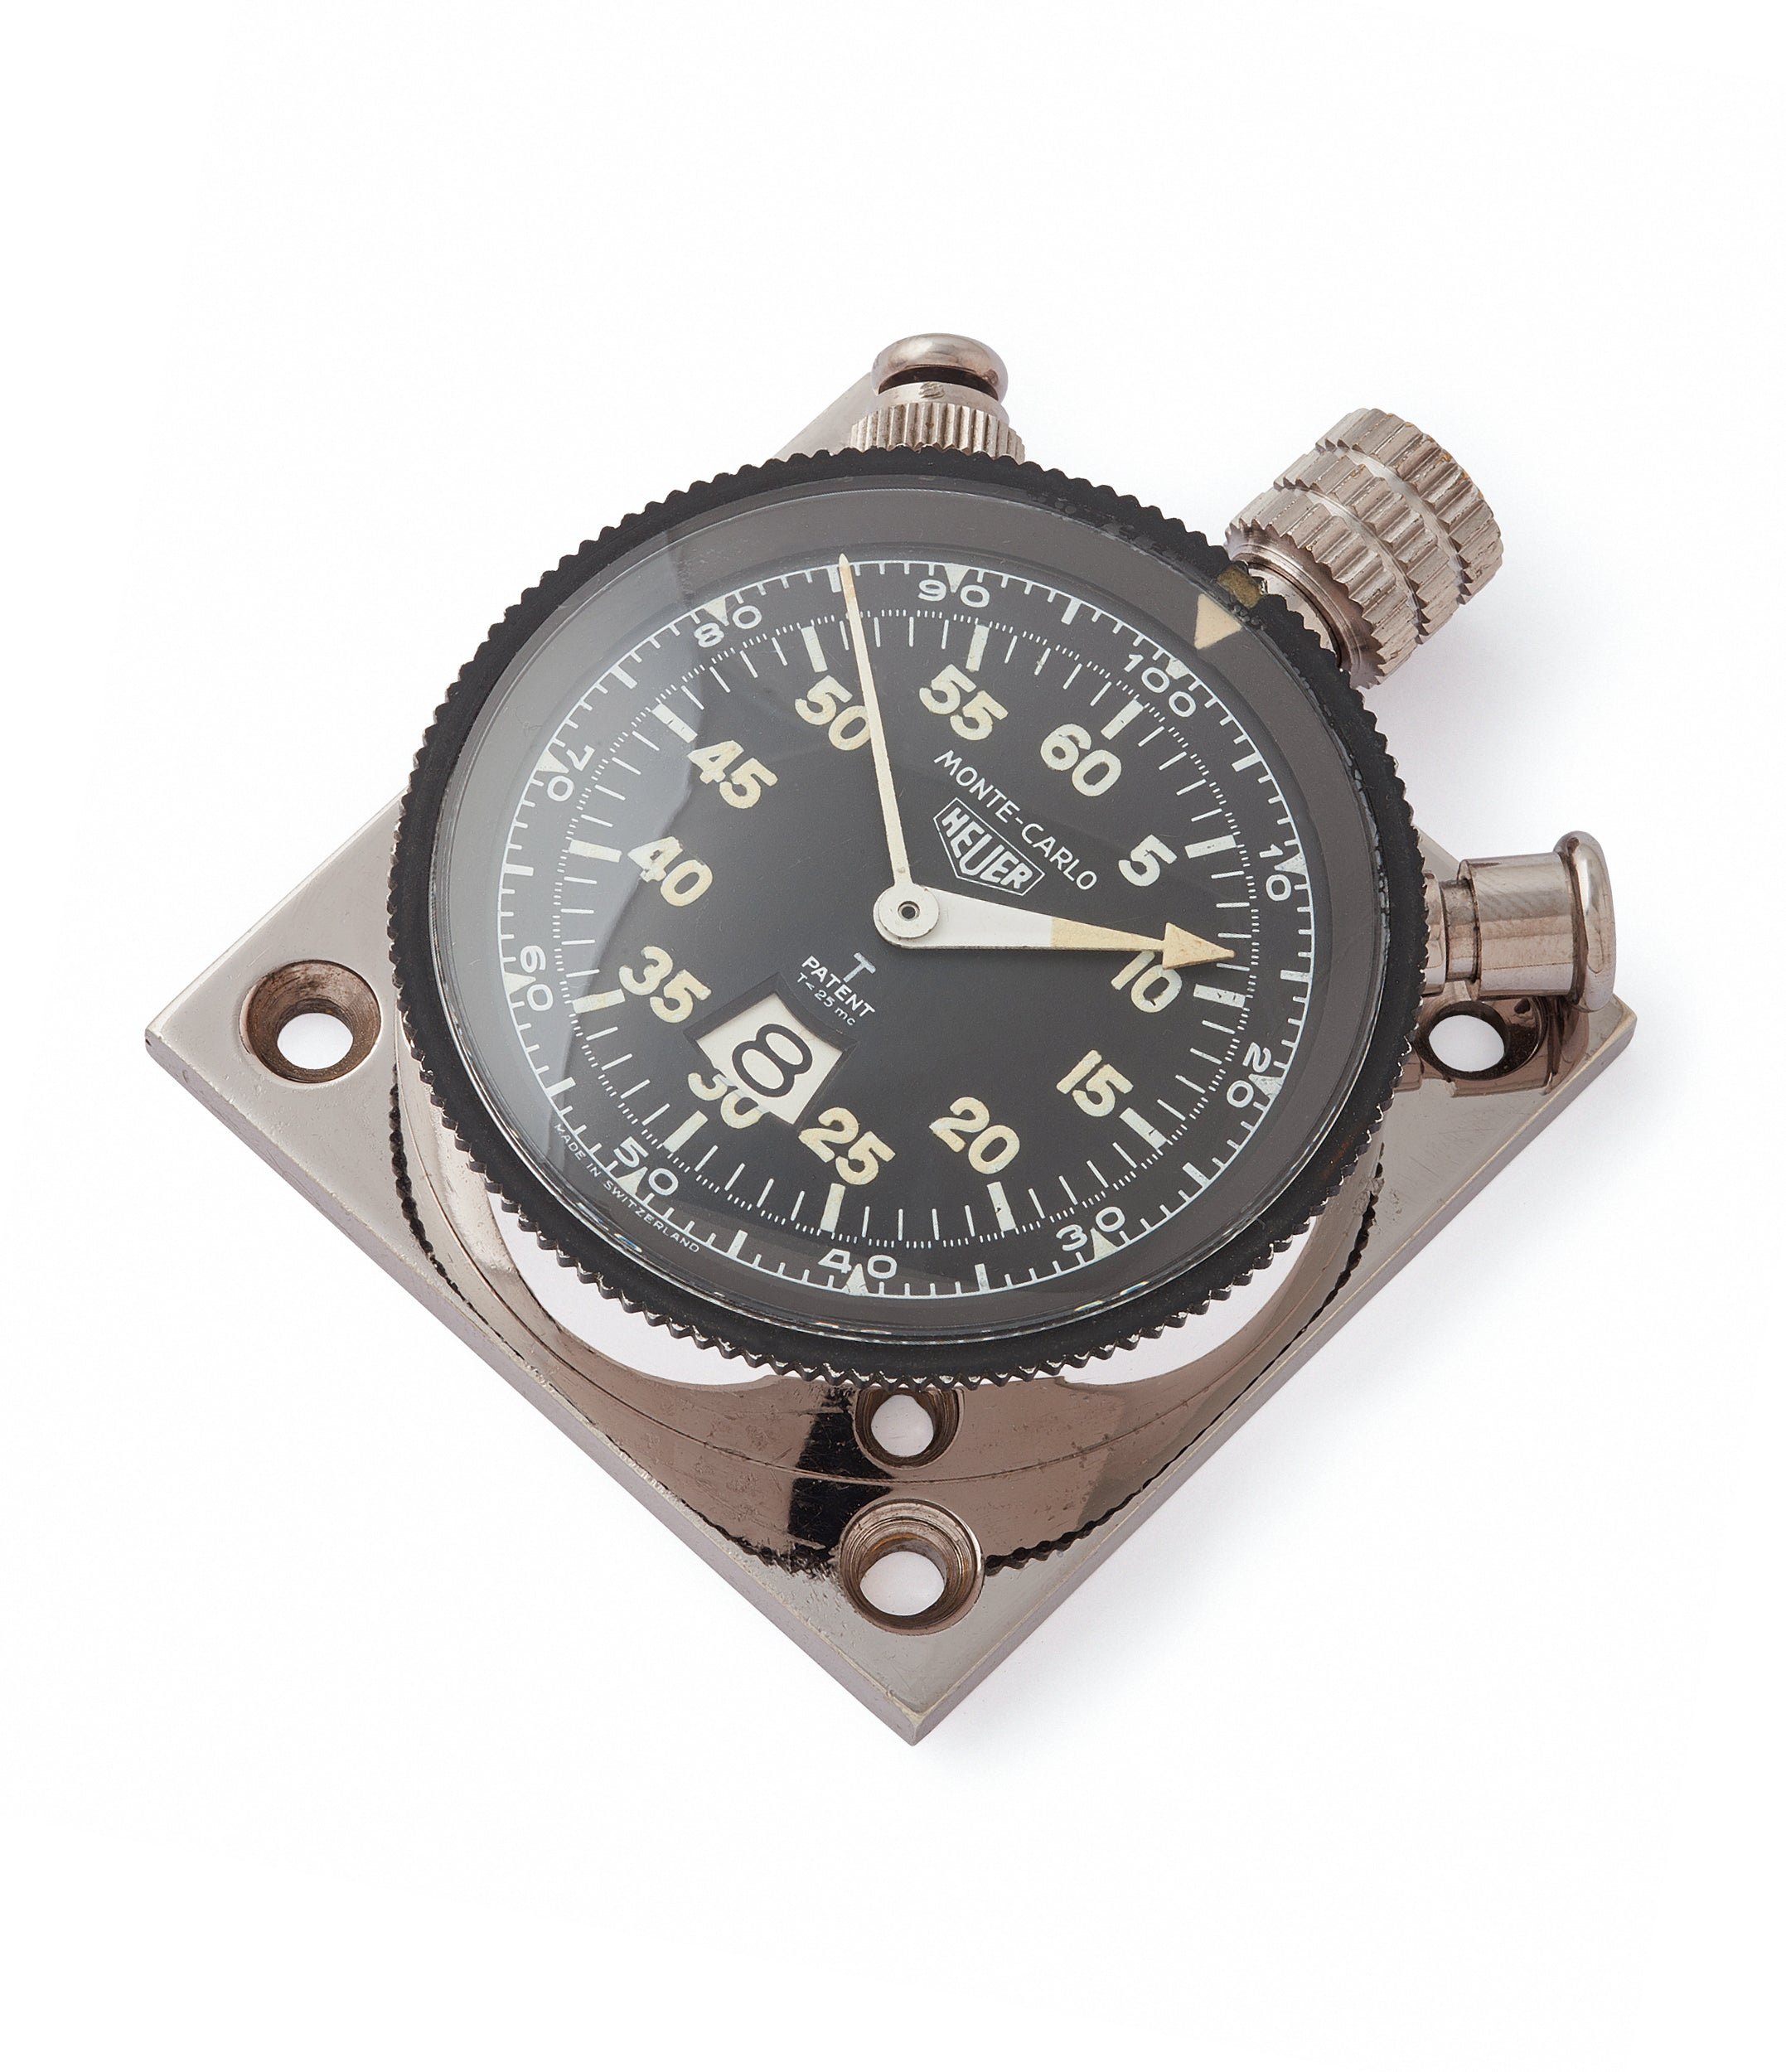 3B/3822 Heuer Monte-Carlo Stopwatch Timer RAF-issued Broad Arrow chronograph for sale at A Collected Man London